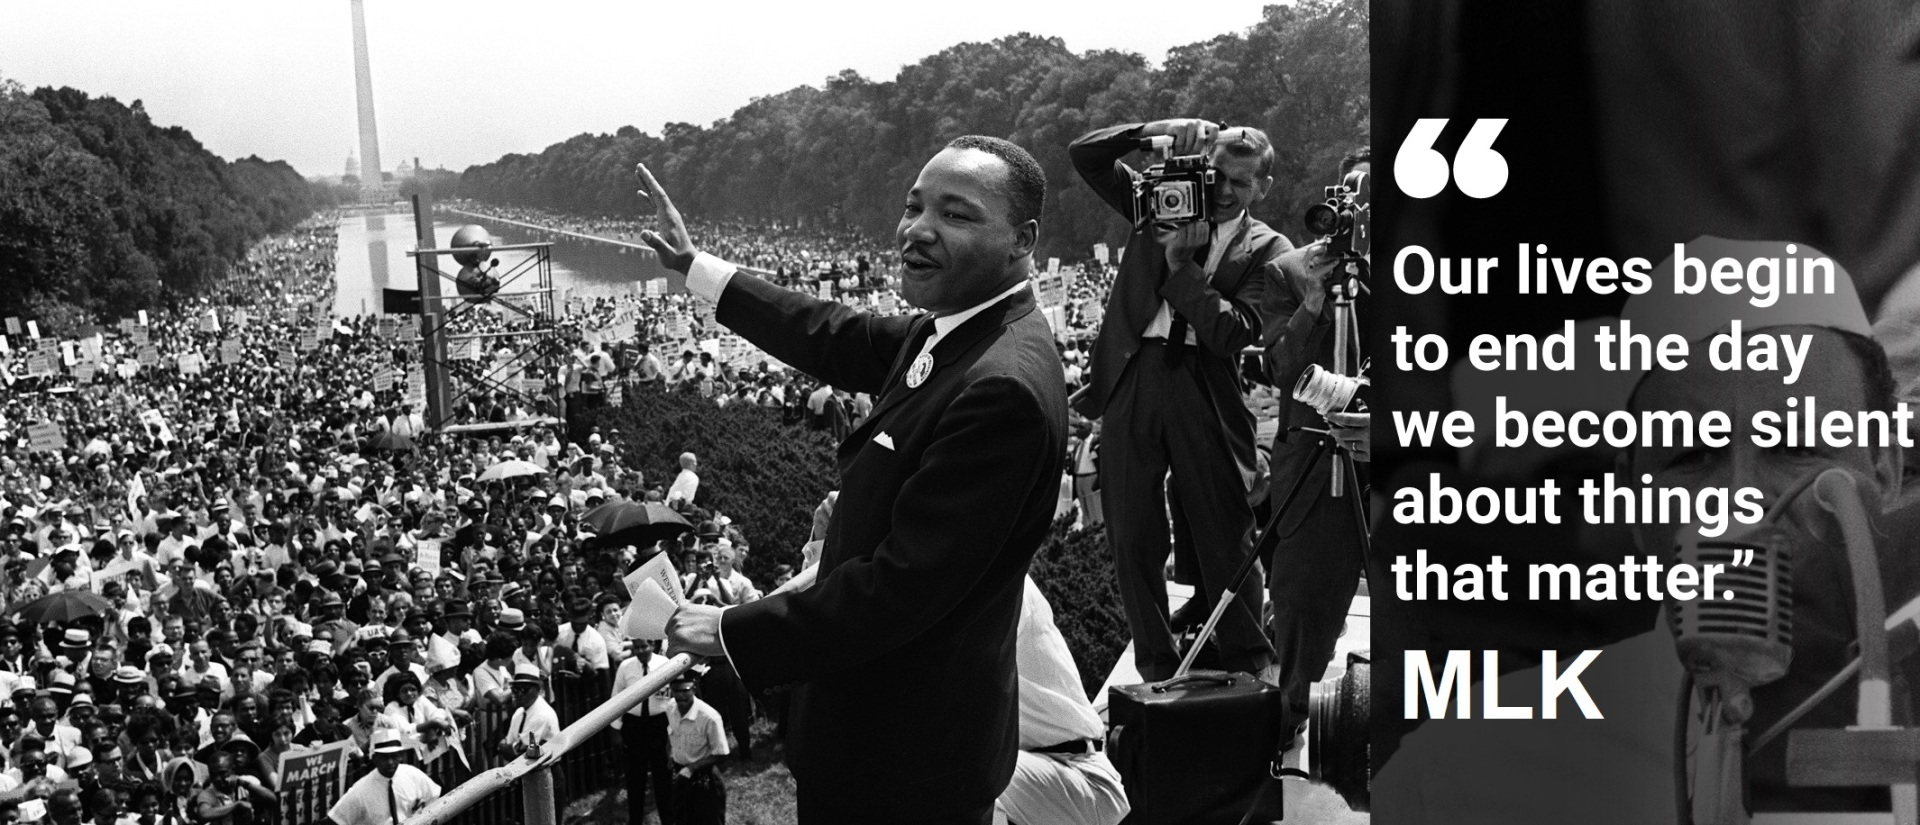 """The civil rights leader Martin Luther King waves to supporters 28 August 1963 on the Mall in Washington DC (Washington Monument in background) during the """"March on Washington"""". King said the march was """"the greatest demonstration of freedom in the history of the United States."""" Martin Luther King was assassinated on 04 April 1968 in Memphis, Tennessee. James Earl Ray confessed to shooting King and was sentenced to 99 years in prison. King's killing sent shock waves through American society at the time, and is still regarded as a landmark event in recent US history. AFP PHOTO (Photo credits: AFP/Getty Images)"""